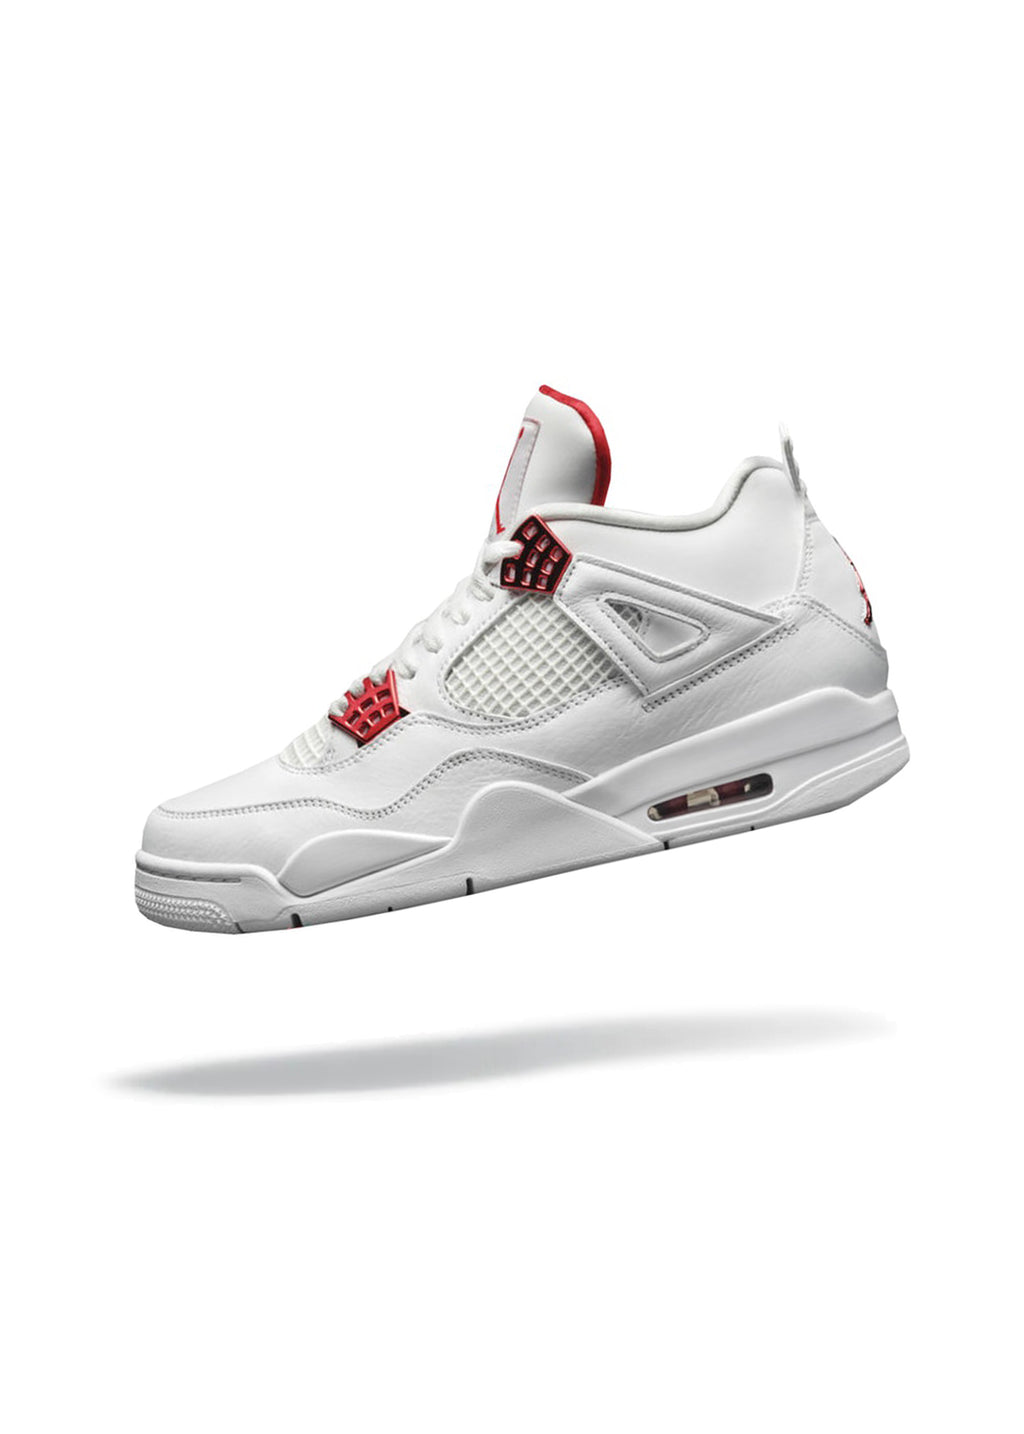 Jordan 4 Retro Metallic Red